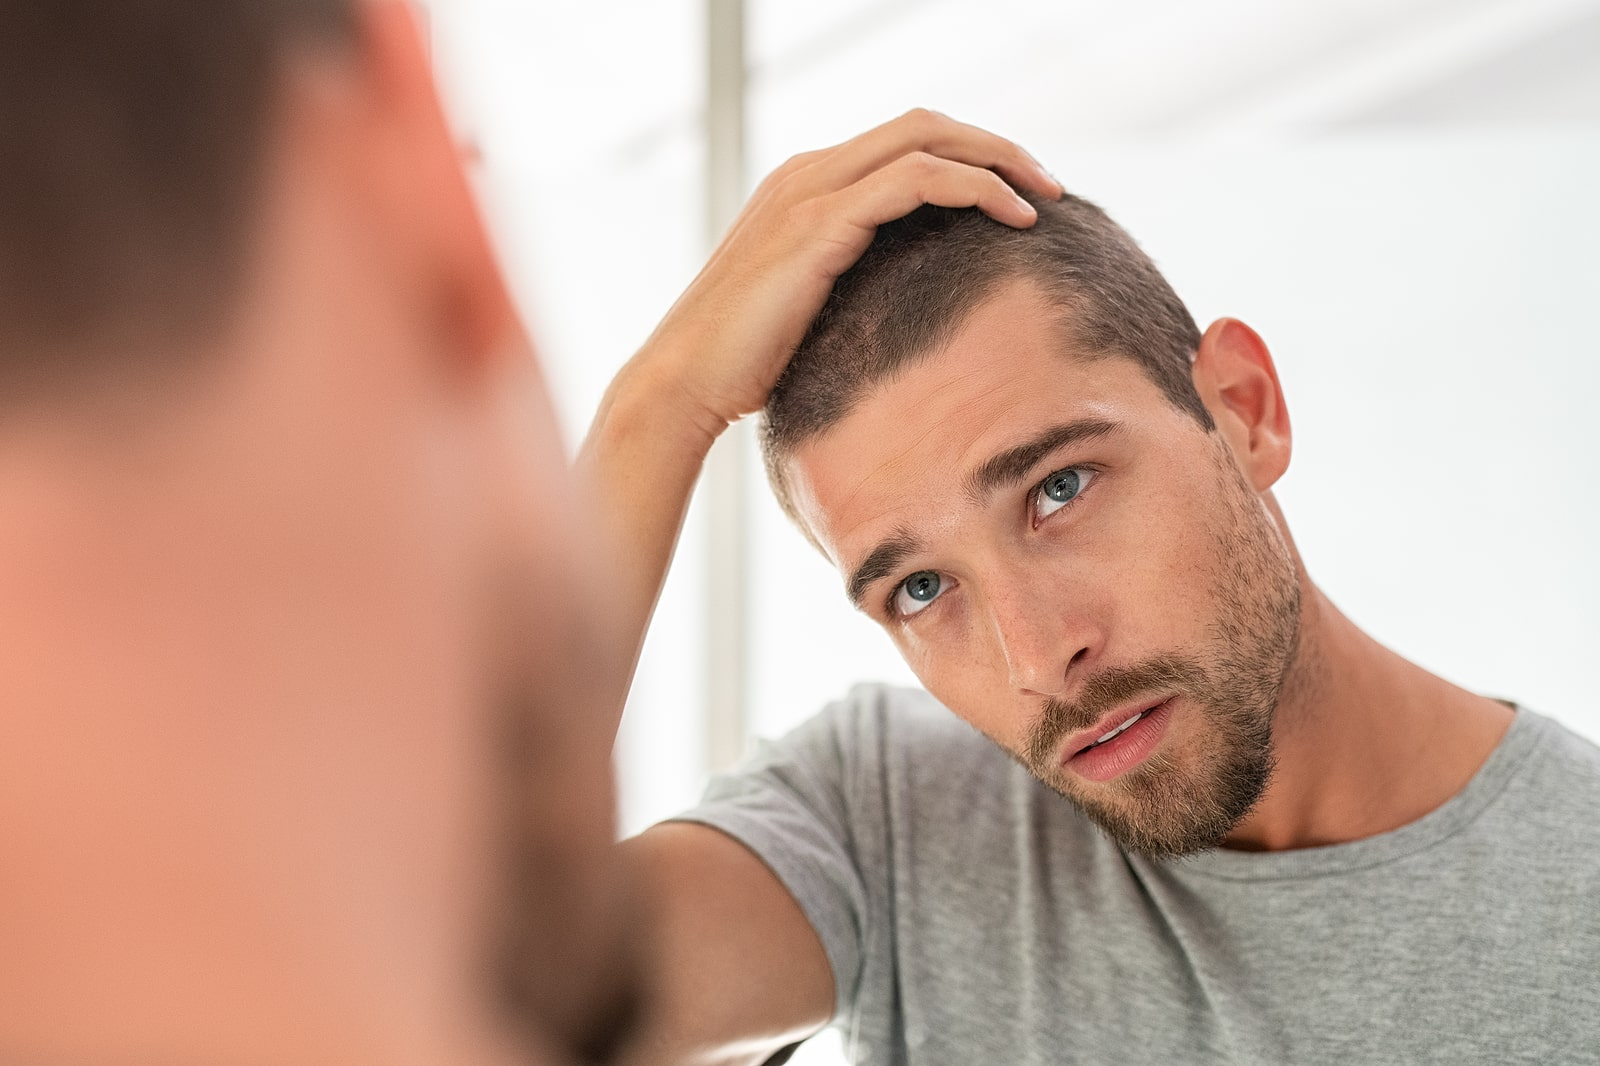 Types of Hair Loss and Possible Causes